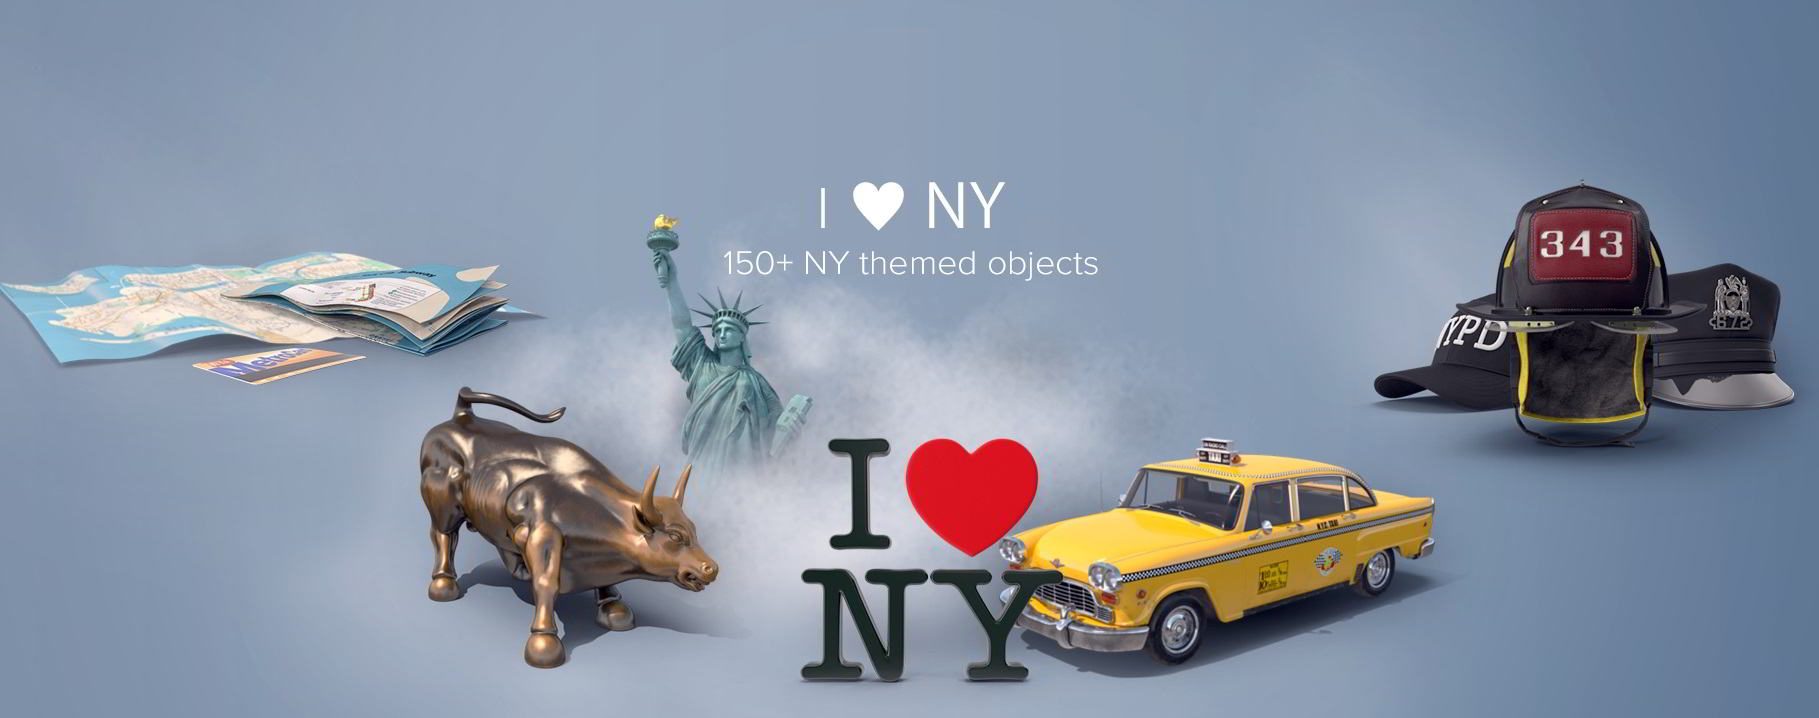 PixelSquid – I Love NY Collection free download